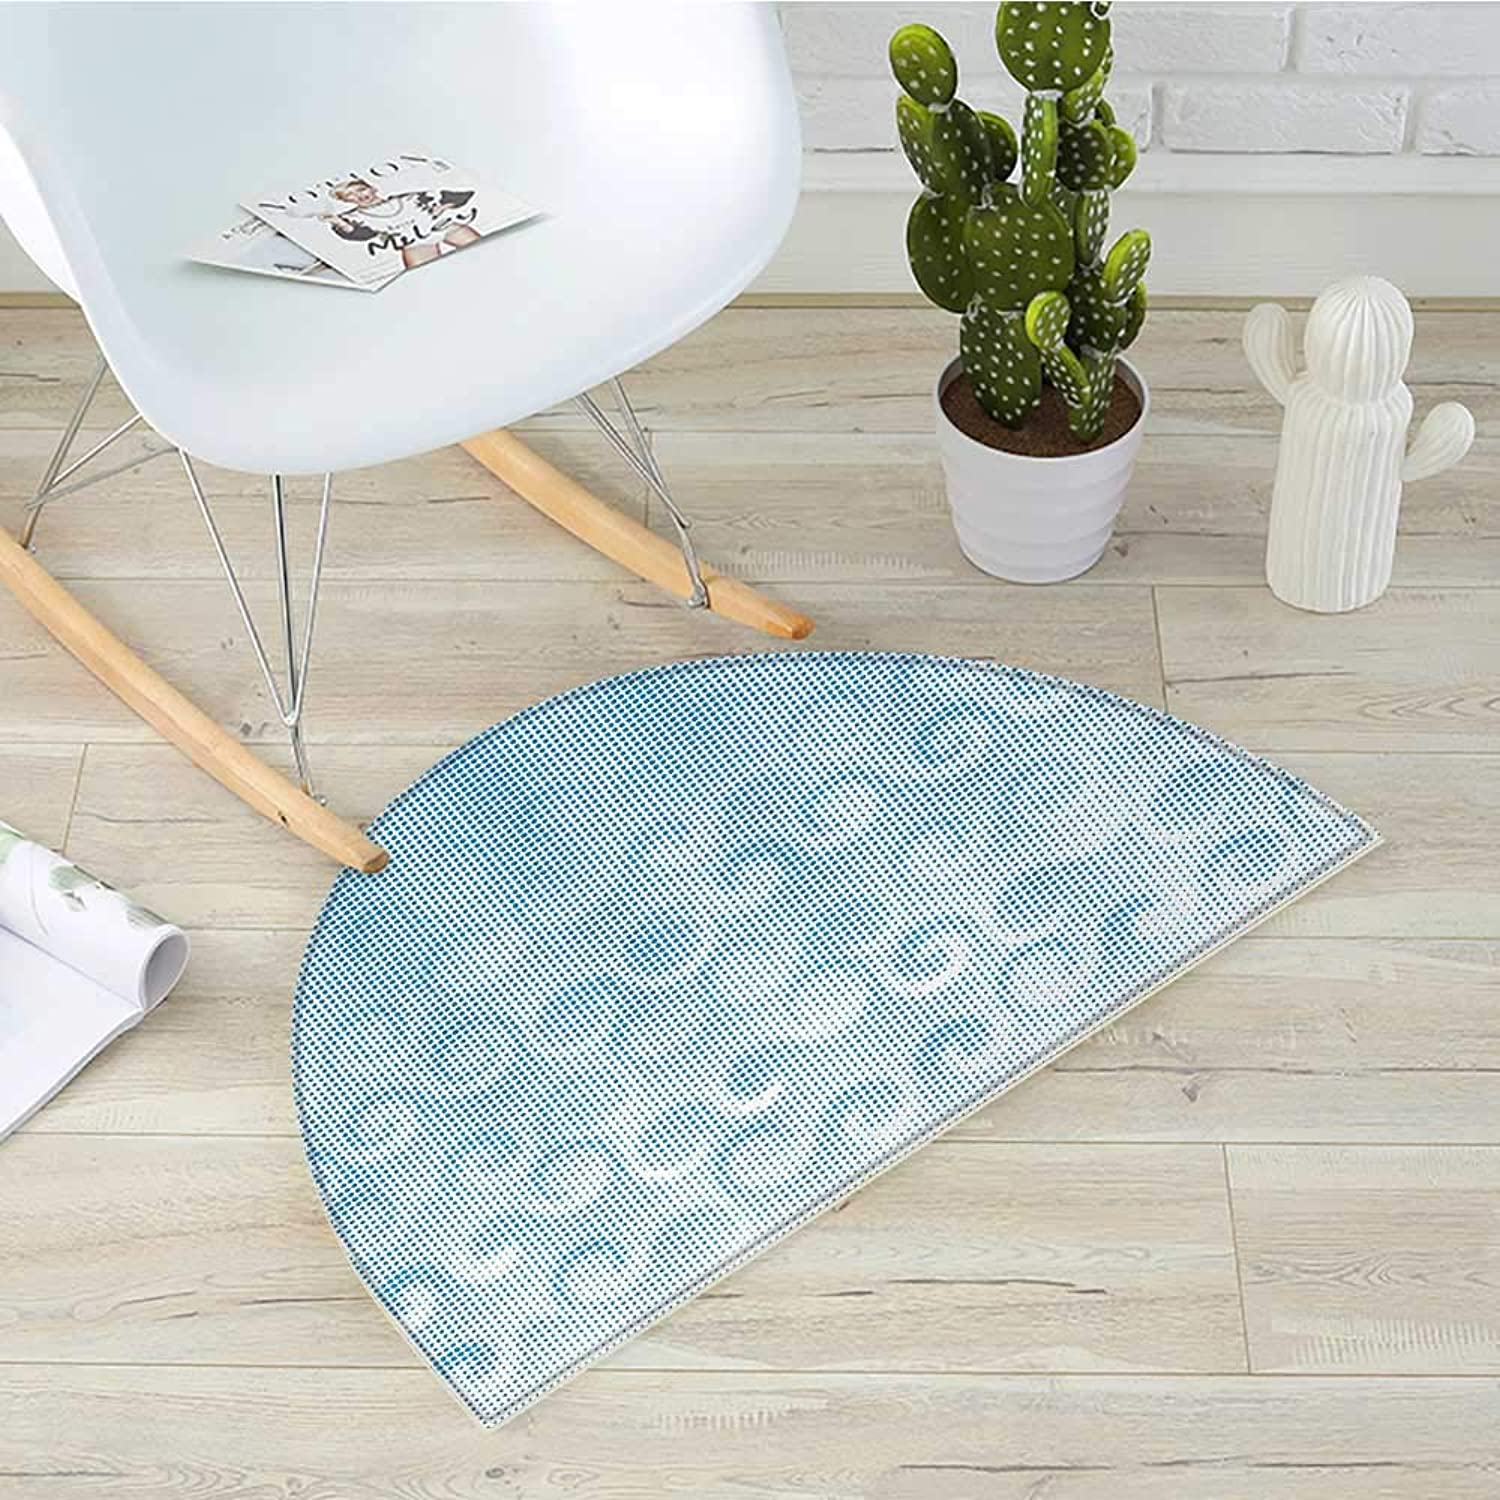 Abstract Half Round Door mats Halftones Background with Circles and Little Digital Dots Like Ocean Wave Artwork Bathroom Mat H 39.3  xD 59  Pale bluee